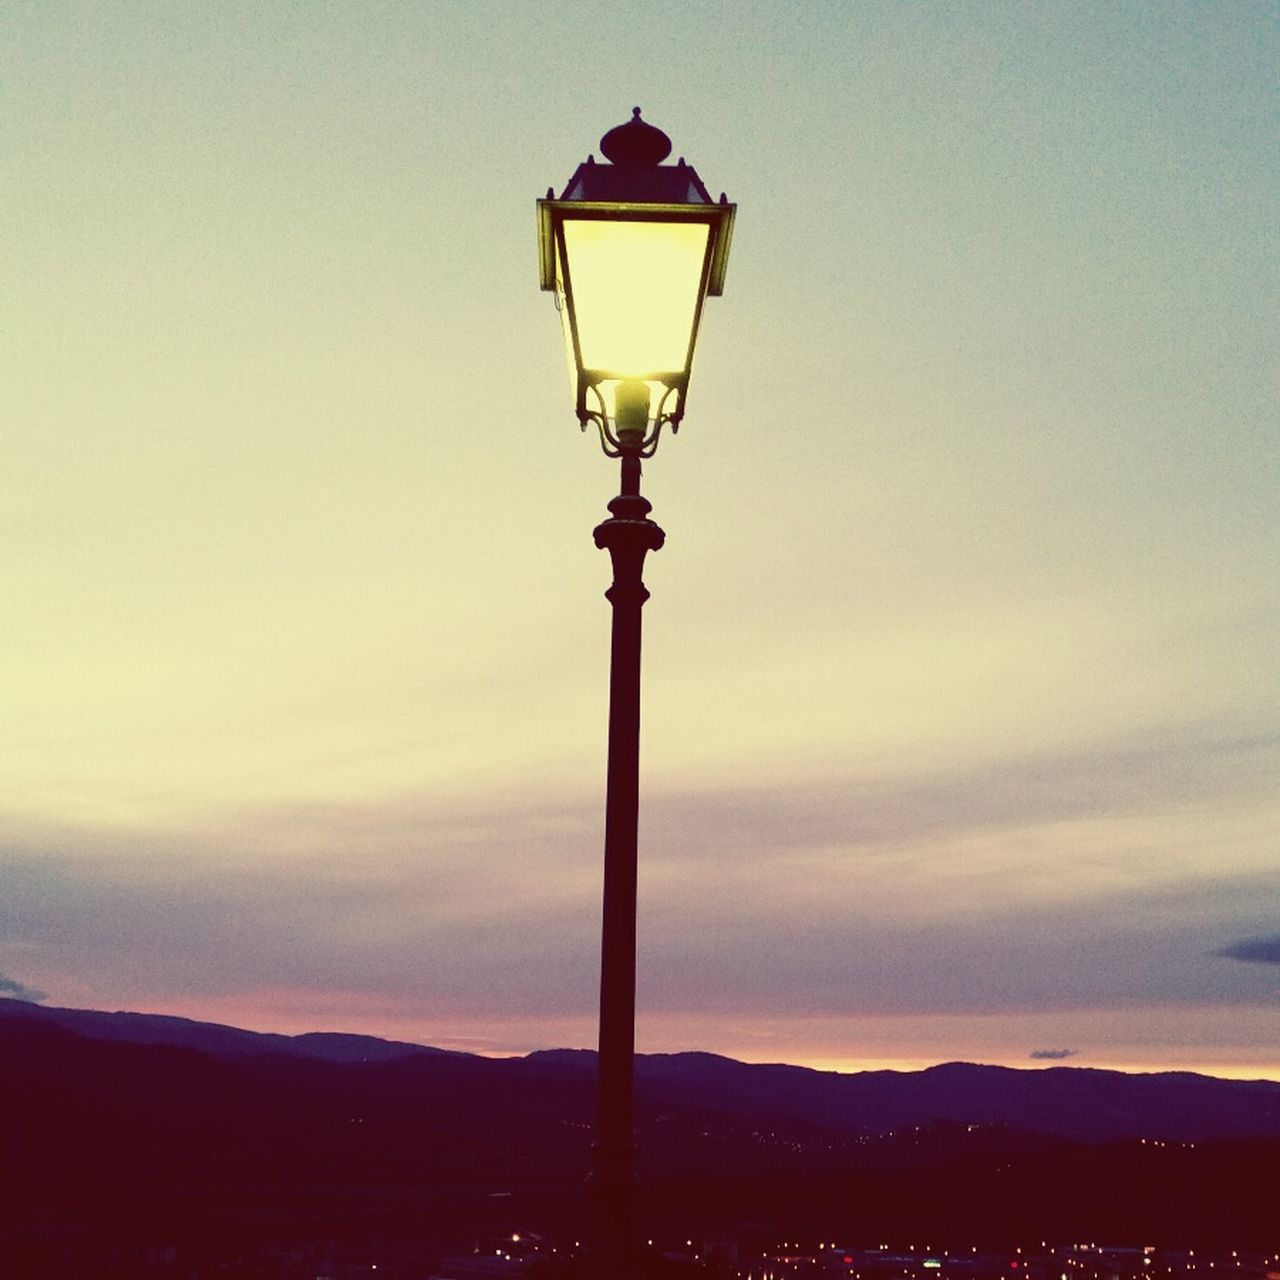 street light, lighting equipment, sky, nature, sunset, beauty in nature, outdoors, scenics, no people, illuminated, tranquility, street lamp, silhouette, tranquil scene, mountain, low angle view, day